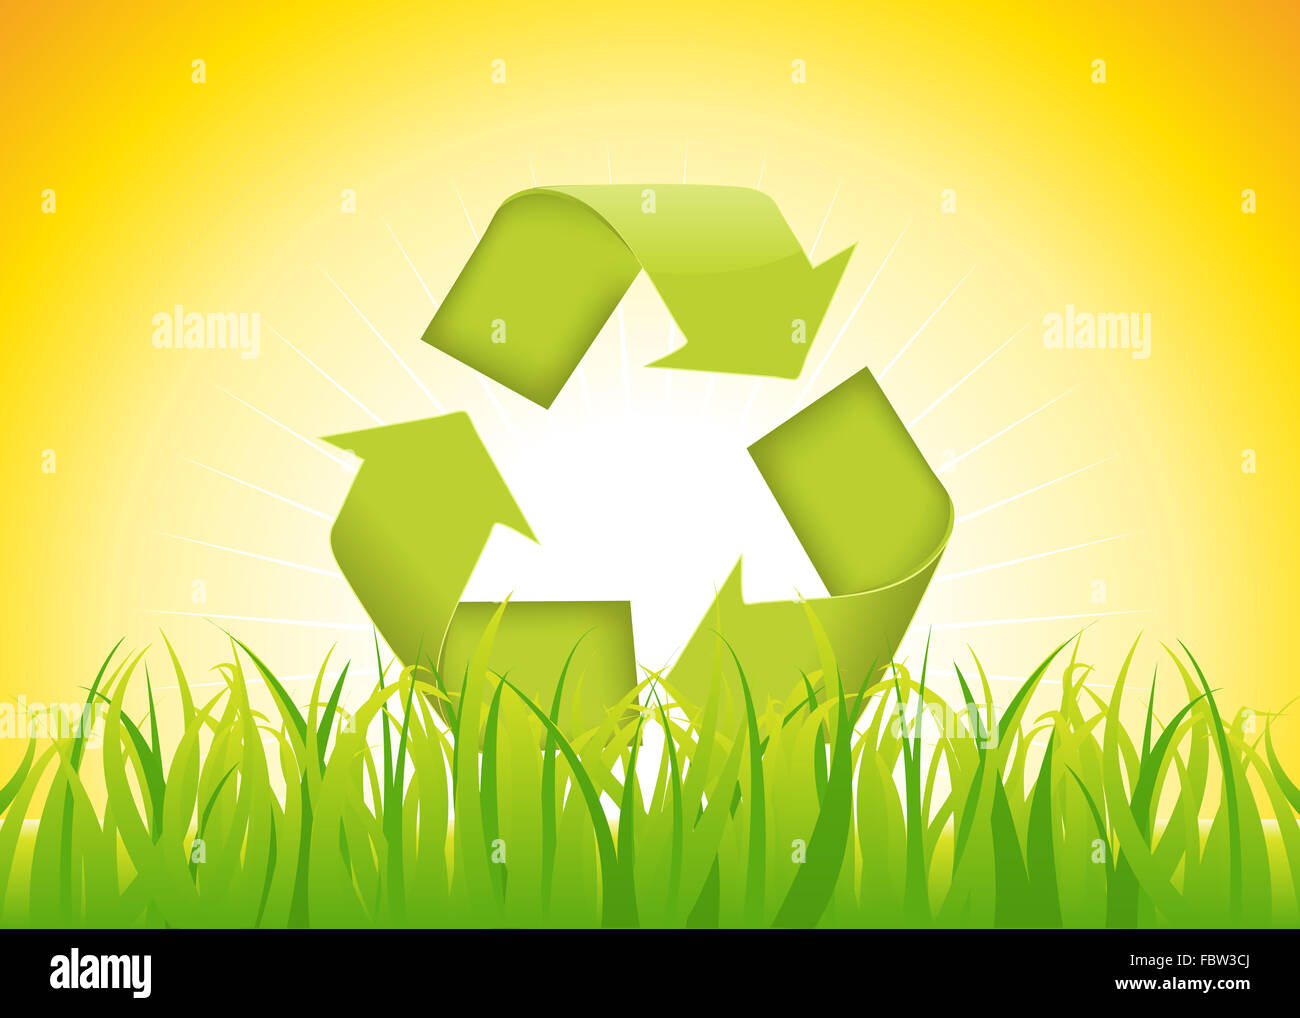 Recyclable Symbol - Stock Image